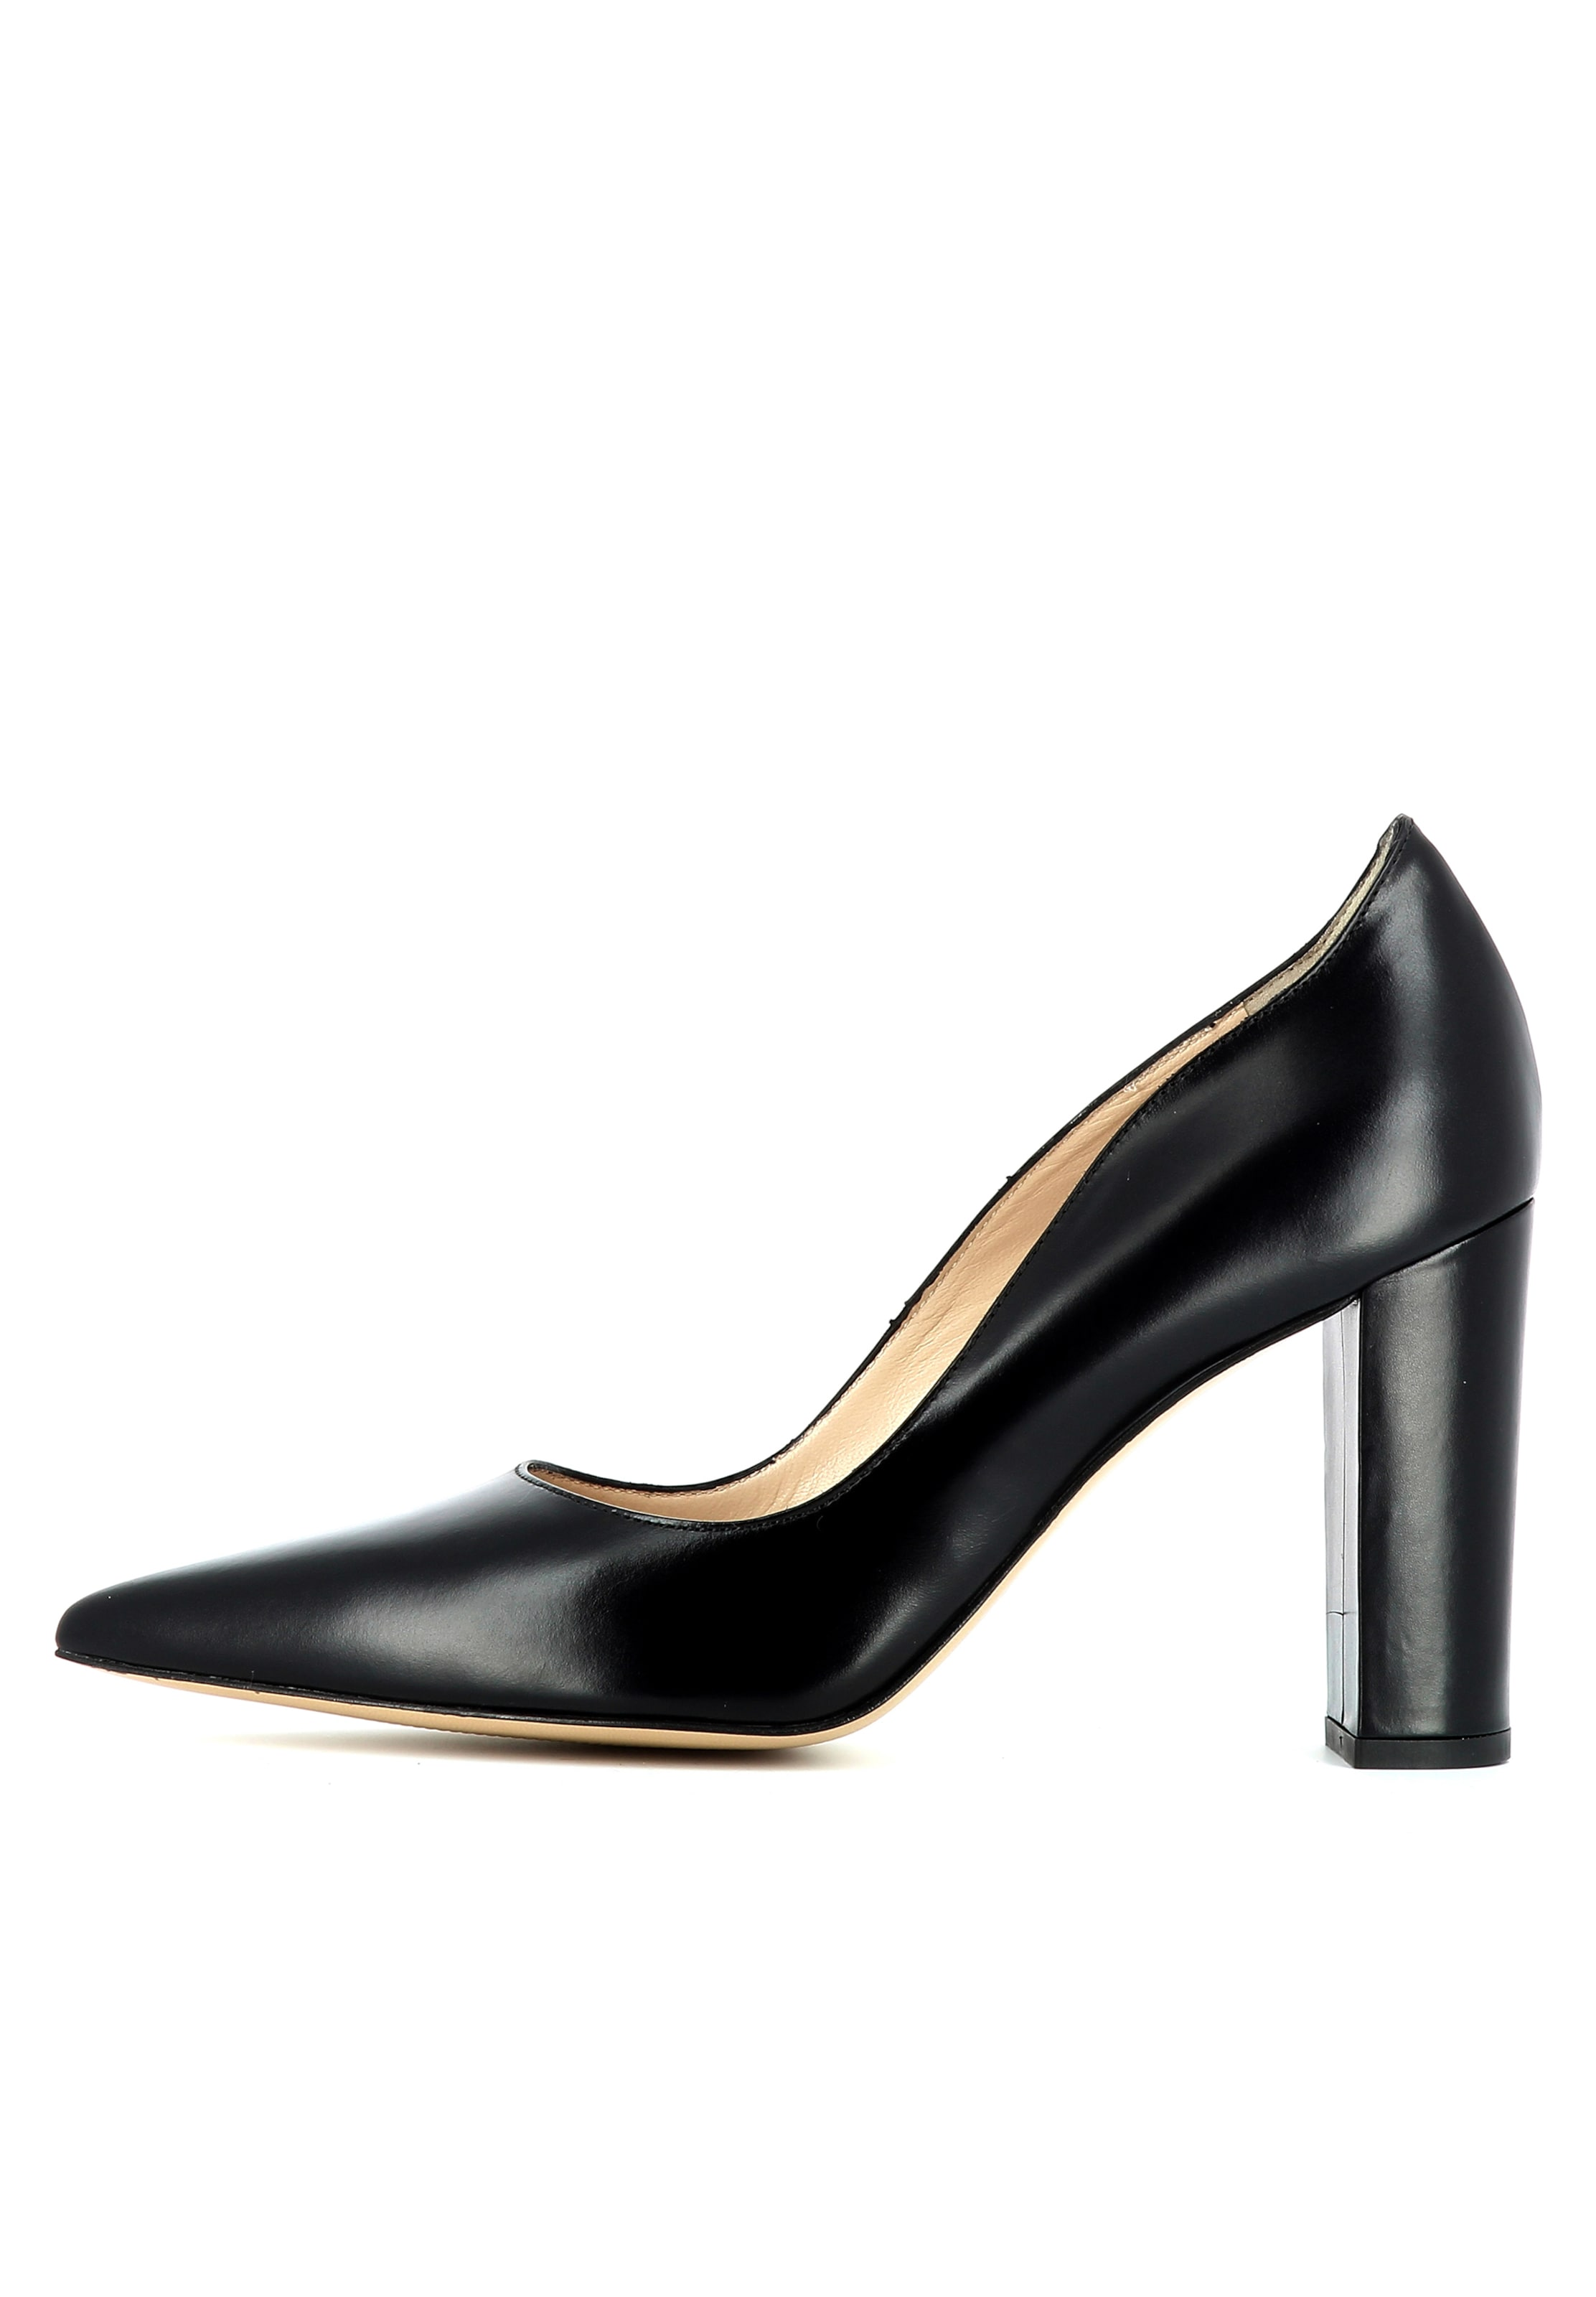 Evita Evita Evita Pumps Schwarz Schwarz Pumps In In Pumps l1J3FKTc